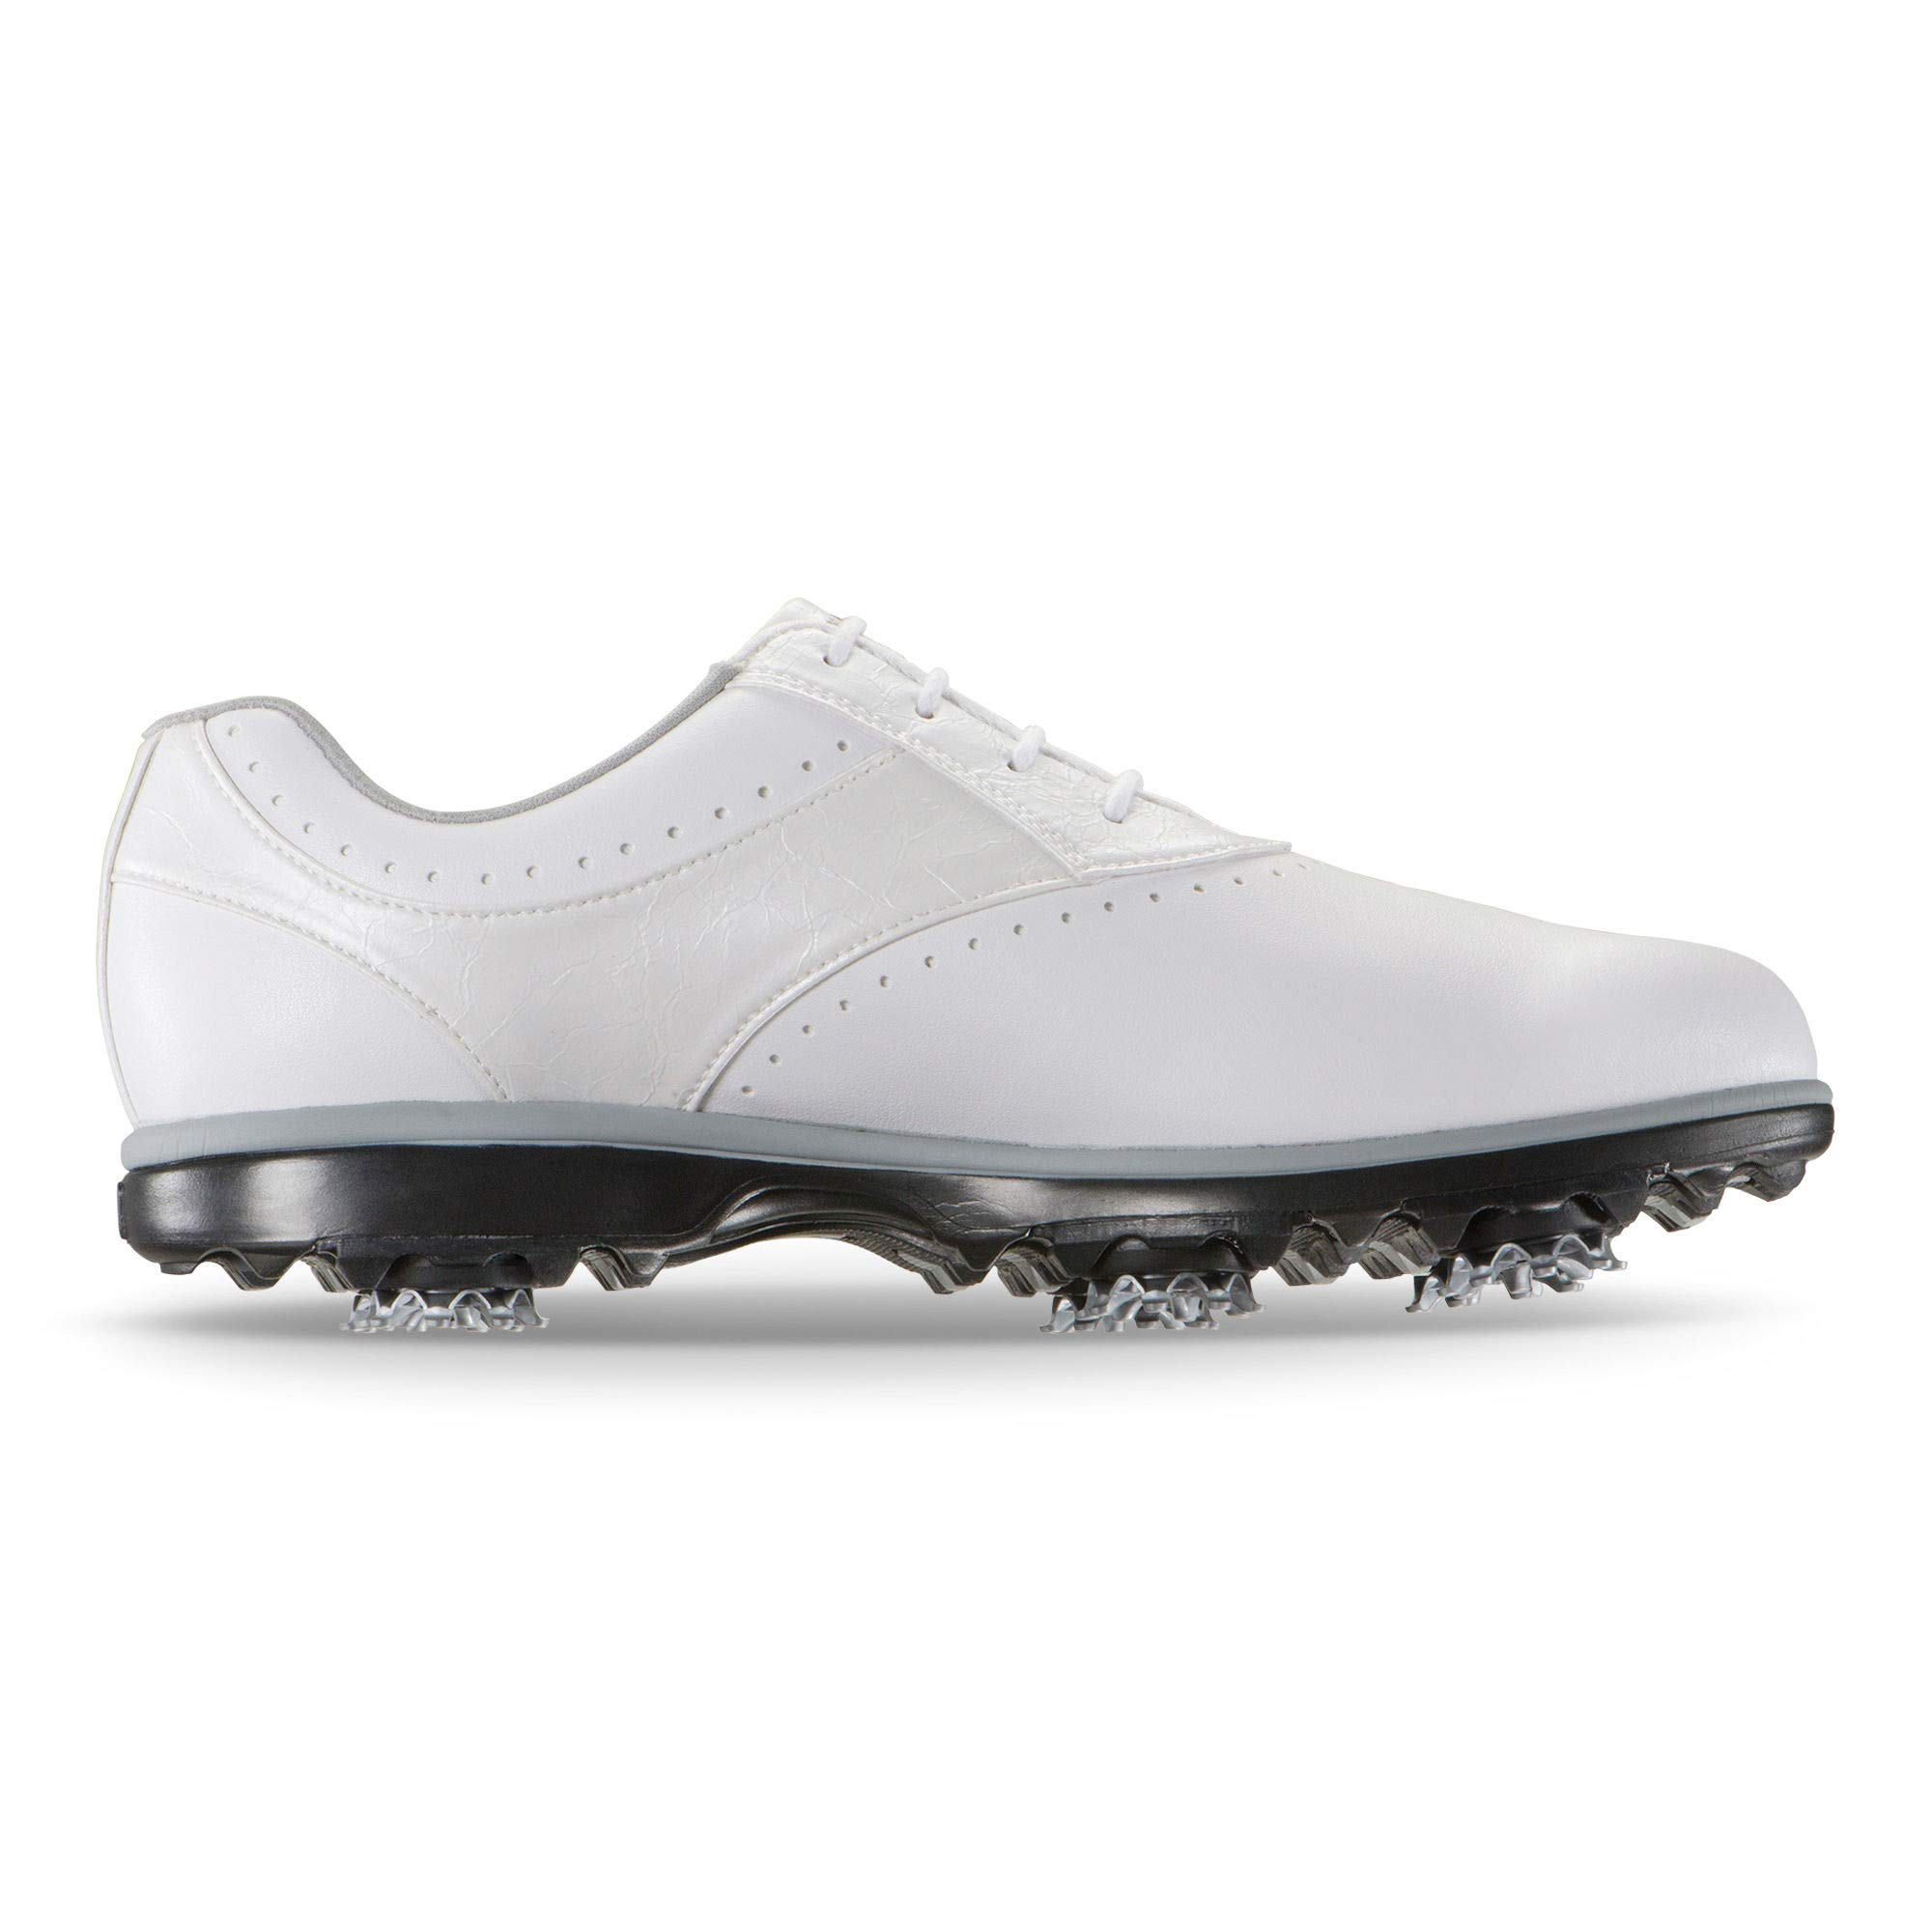 FootJoy Women's Emerge-Previous Season Style Golf Shoes White 9 M US by FootJoy